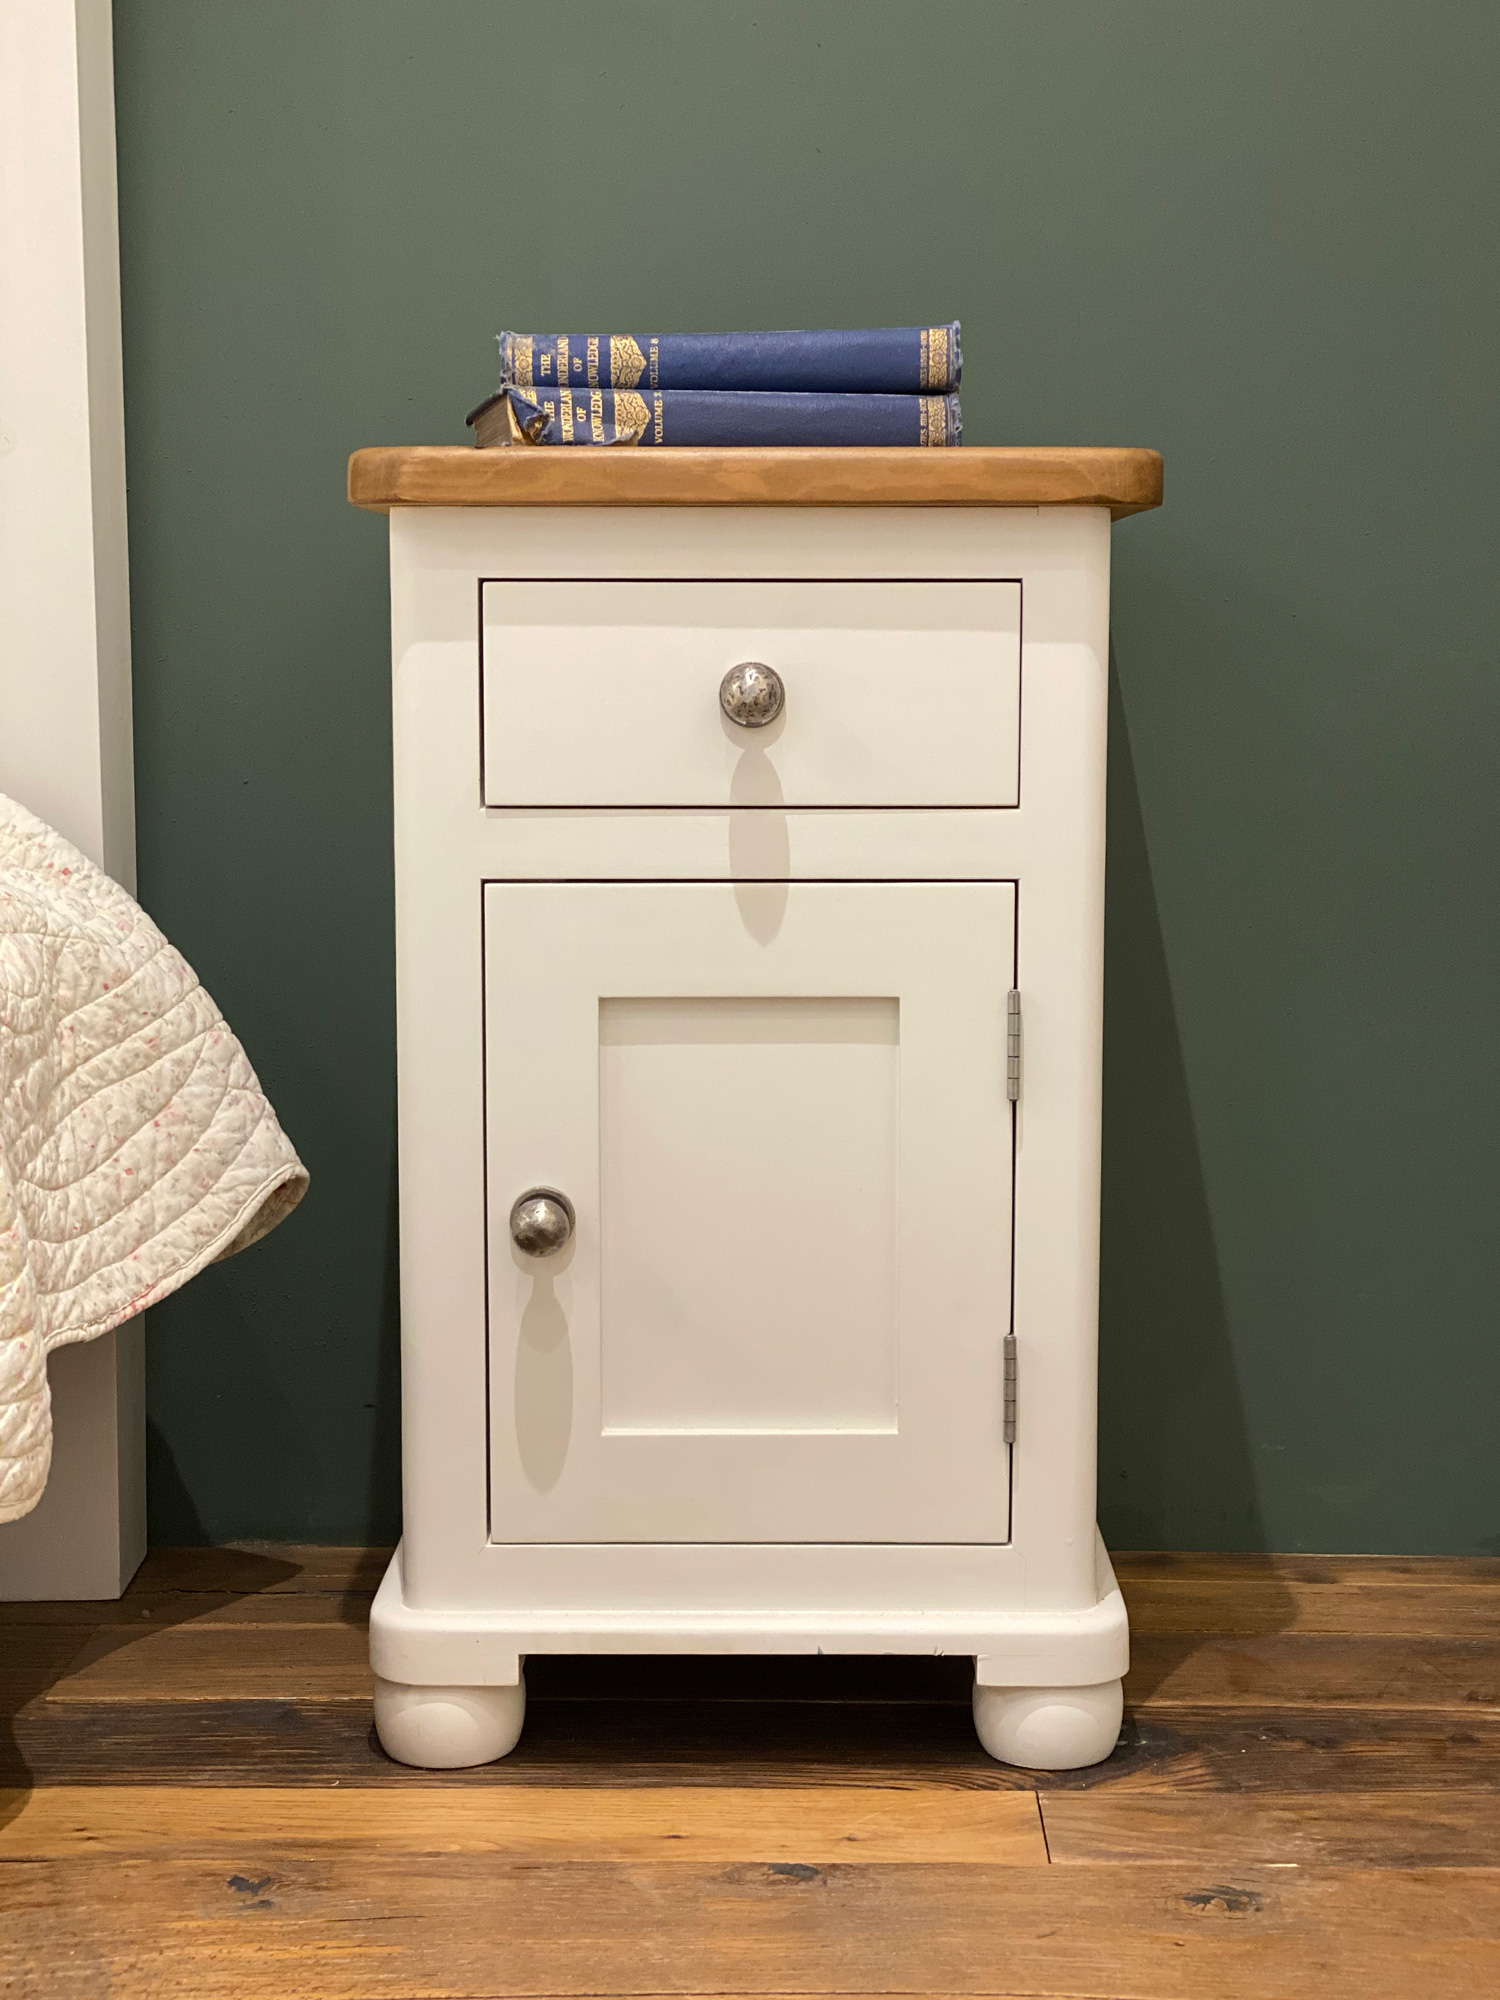 Painted round end bedside table with one door and one drawer against green wall